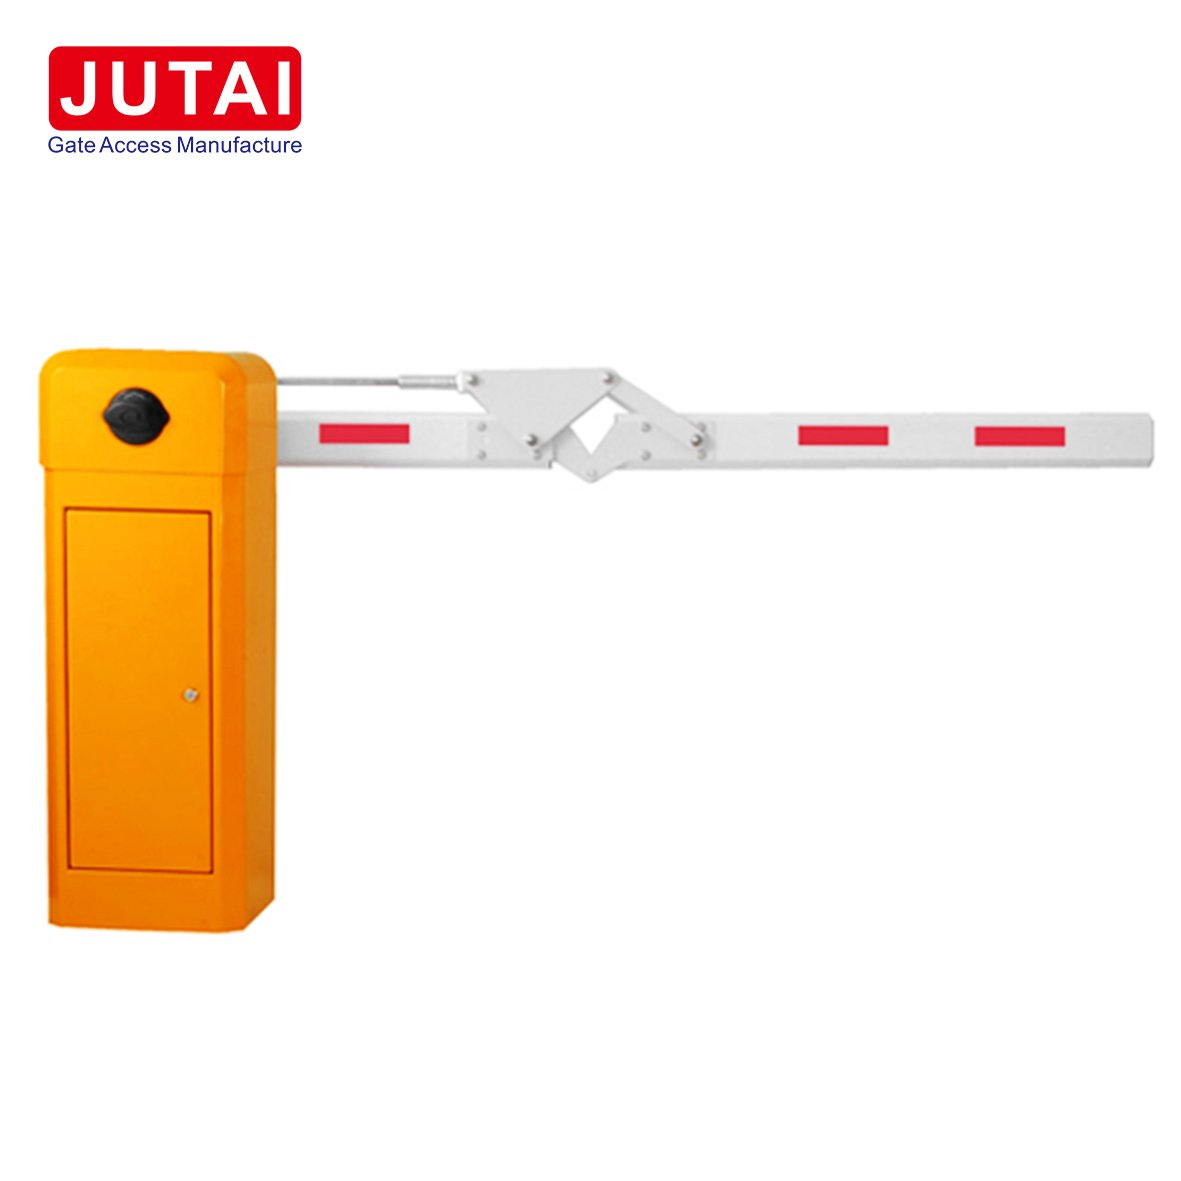 Barrier Gate System with Arm Length 6 m OF 100mm Traffic LED Light